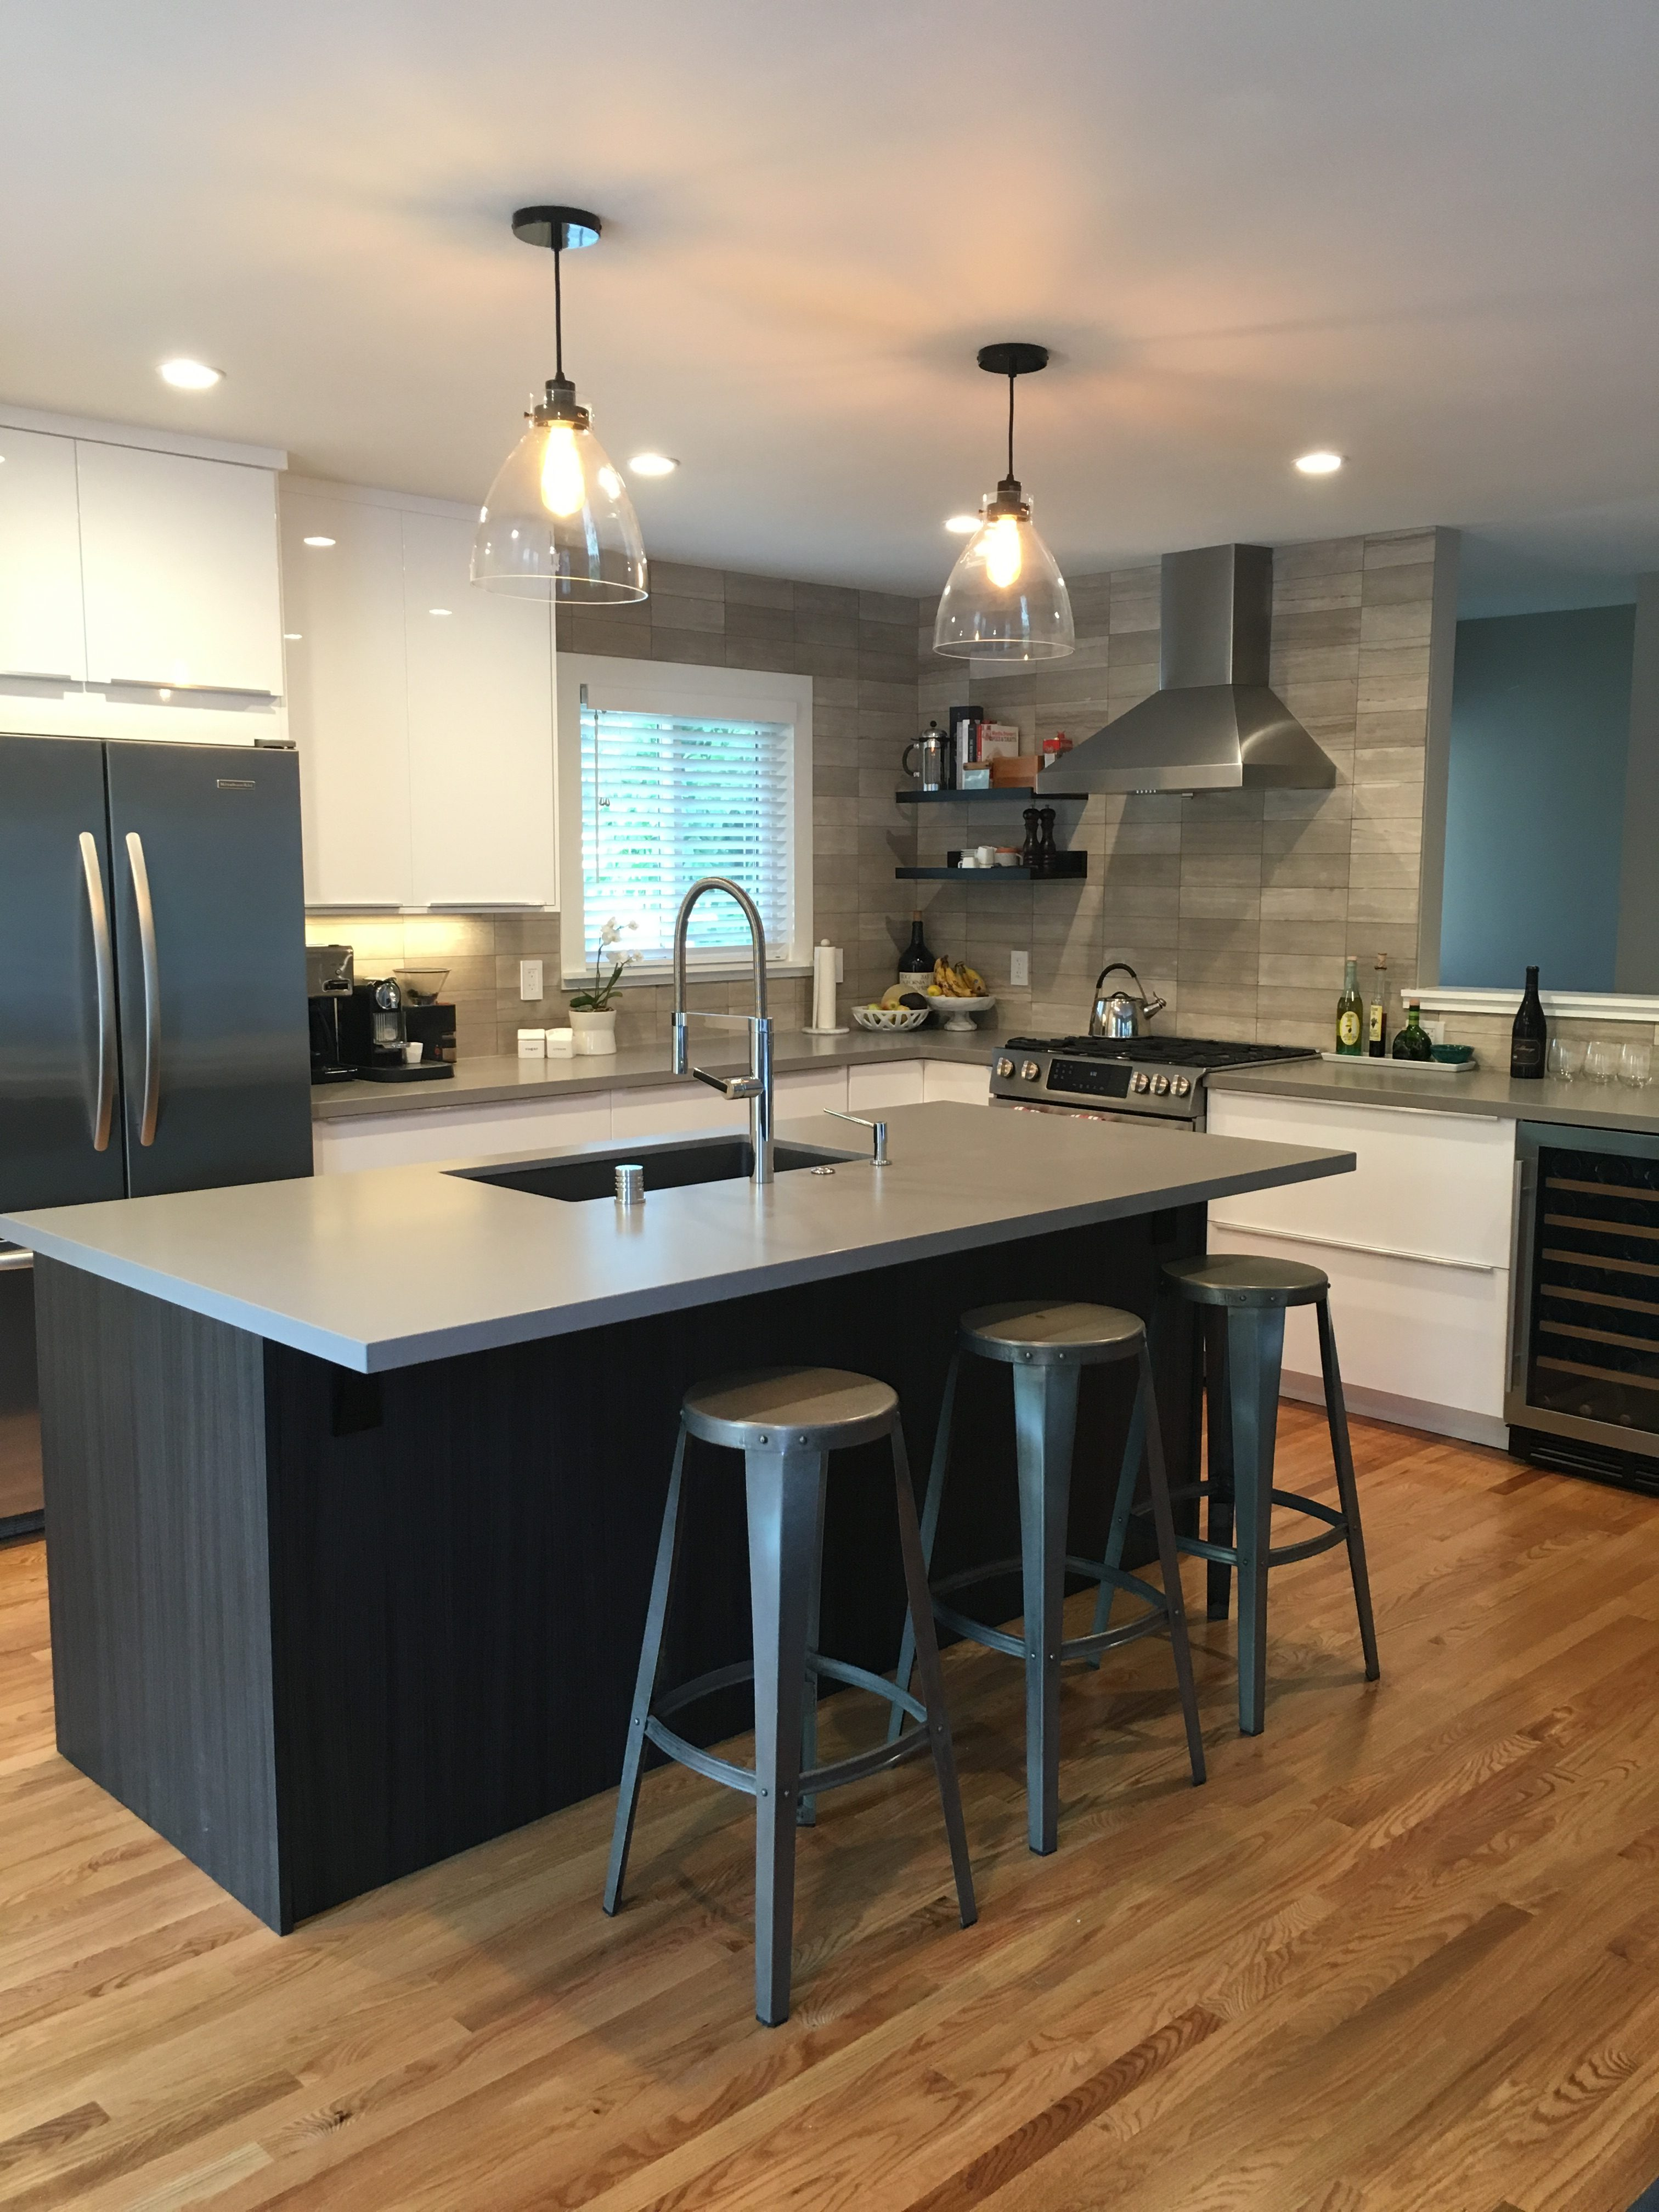 A Sophisticated yet Family-Friendly IKEA Kitchen Design on Model Kitchen Images  id=95744